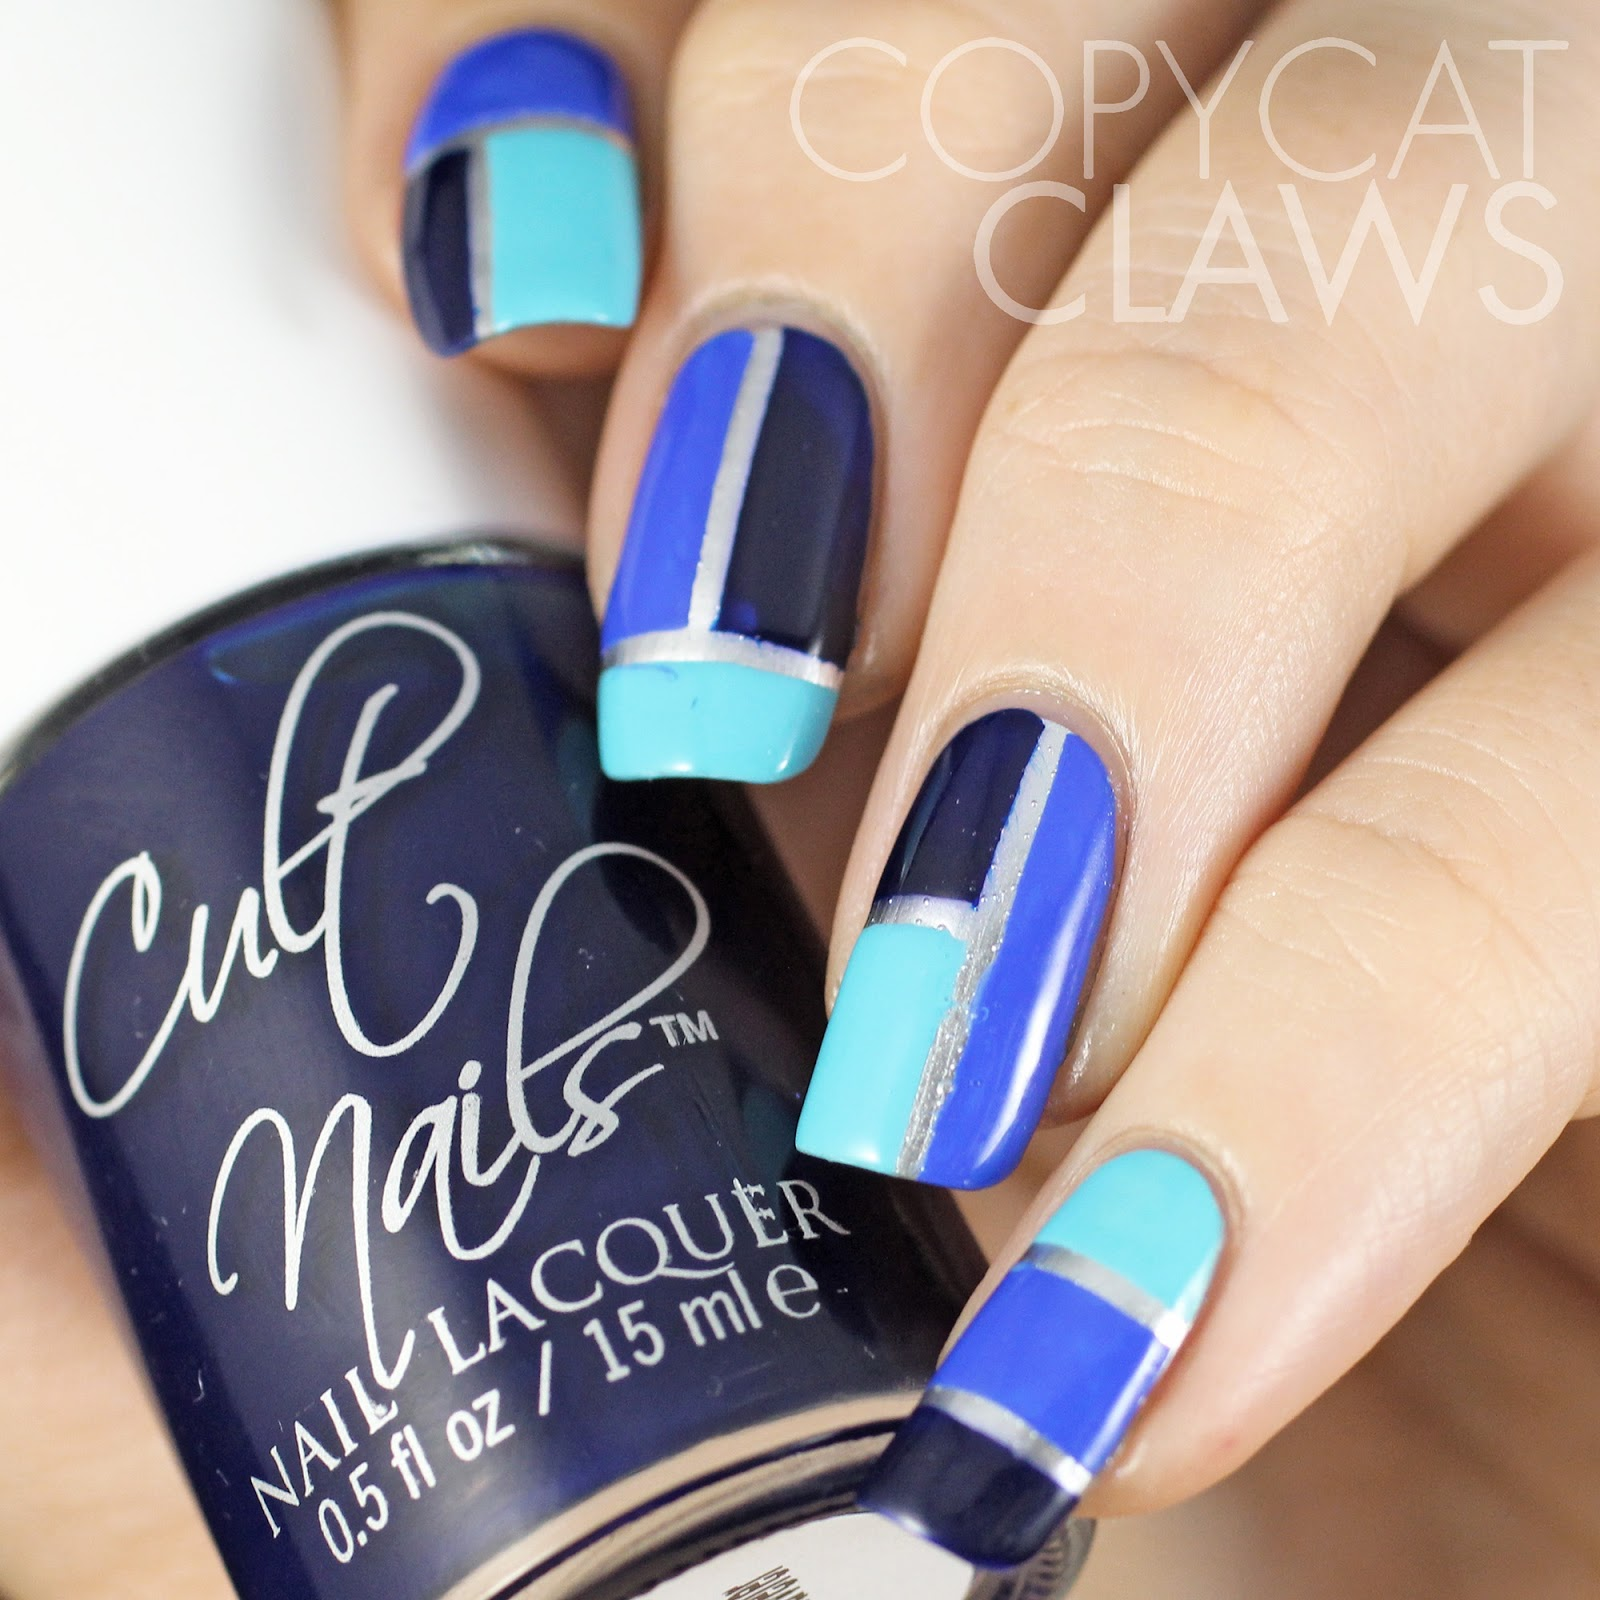 Copycat Claws: Blue Color Block Nail Art